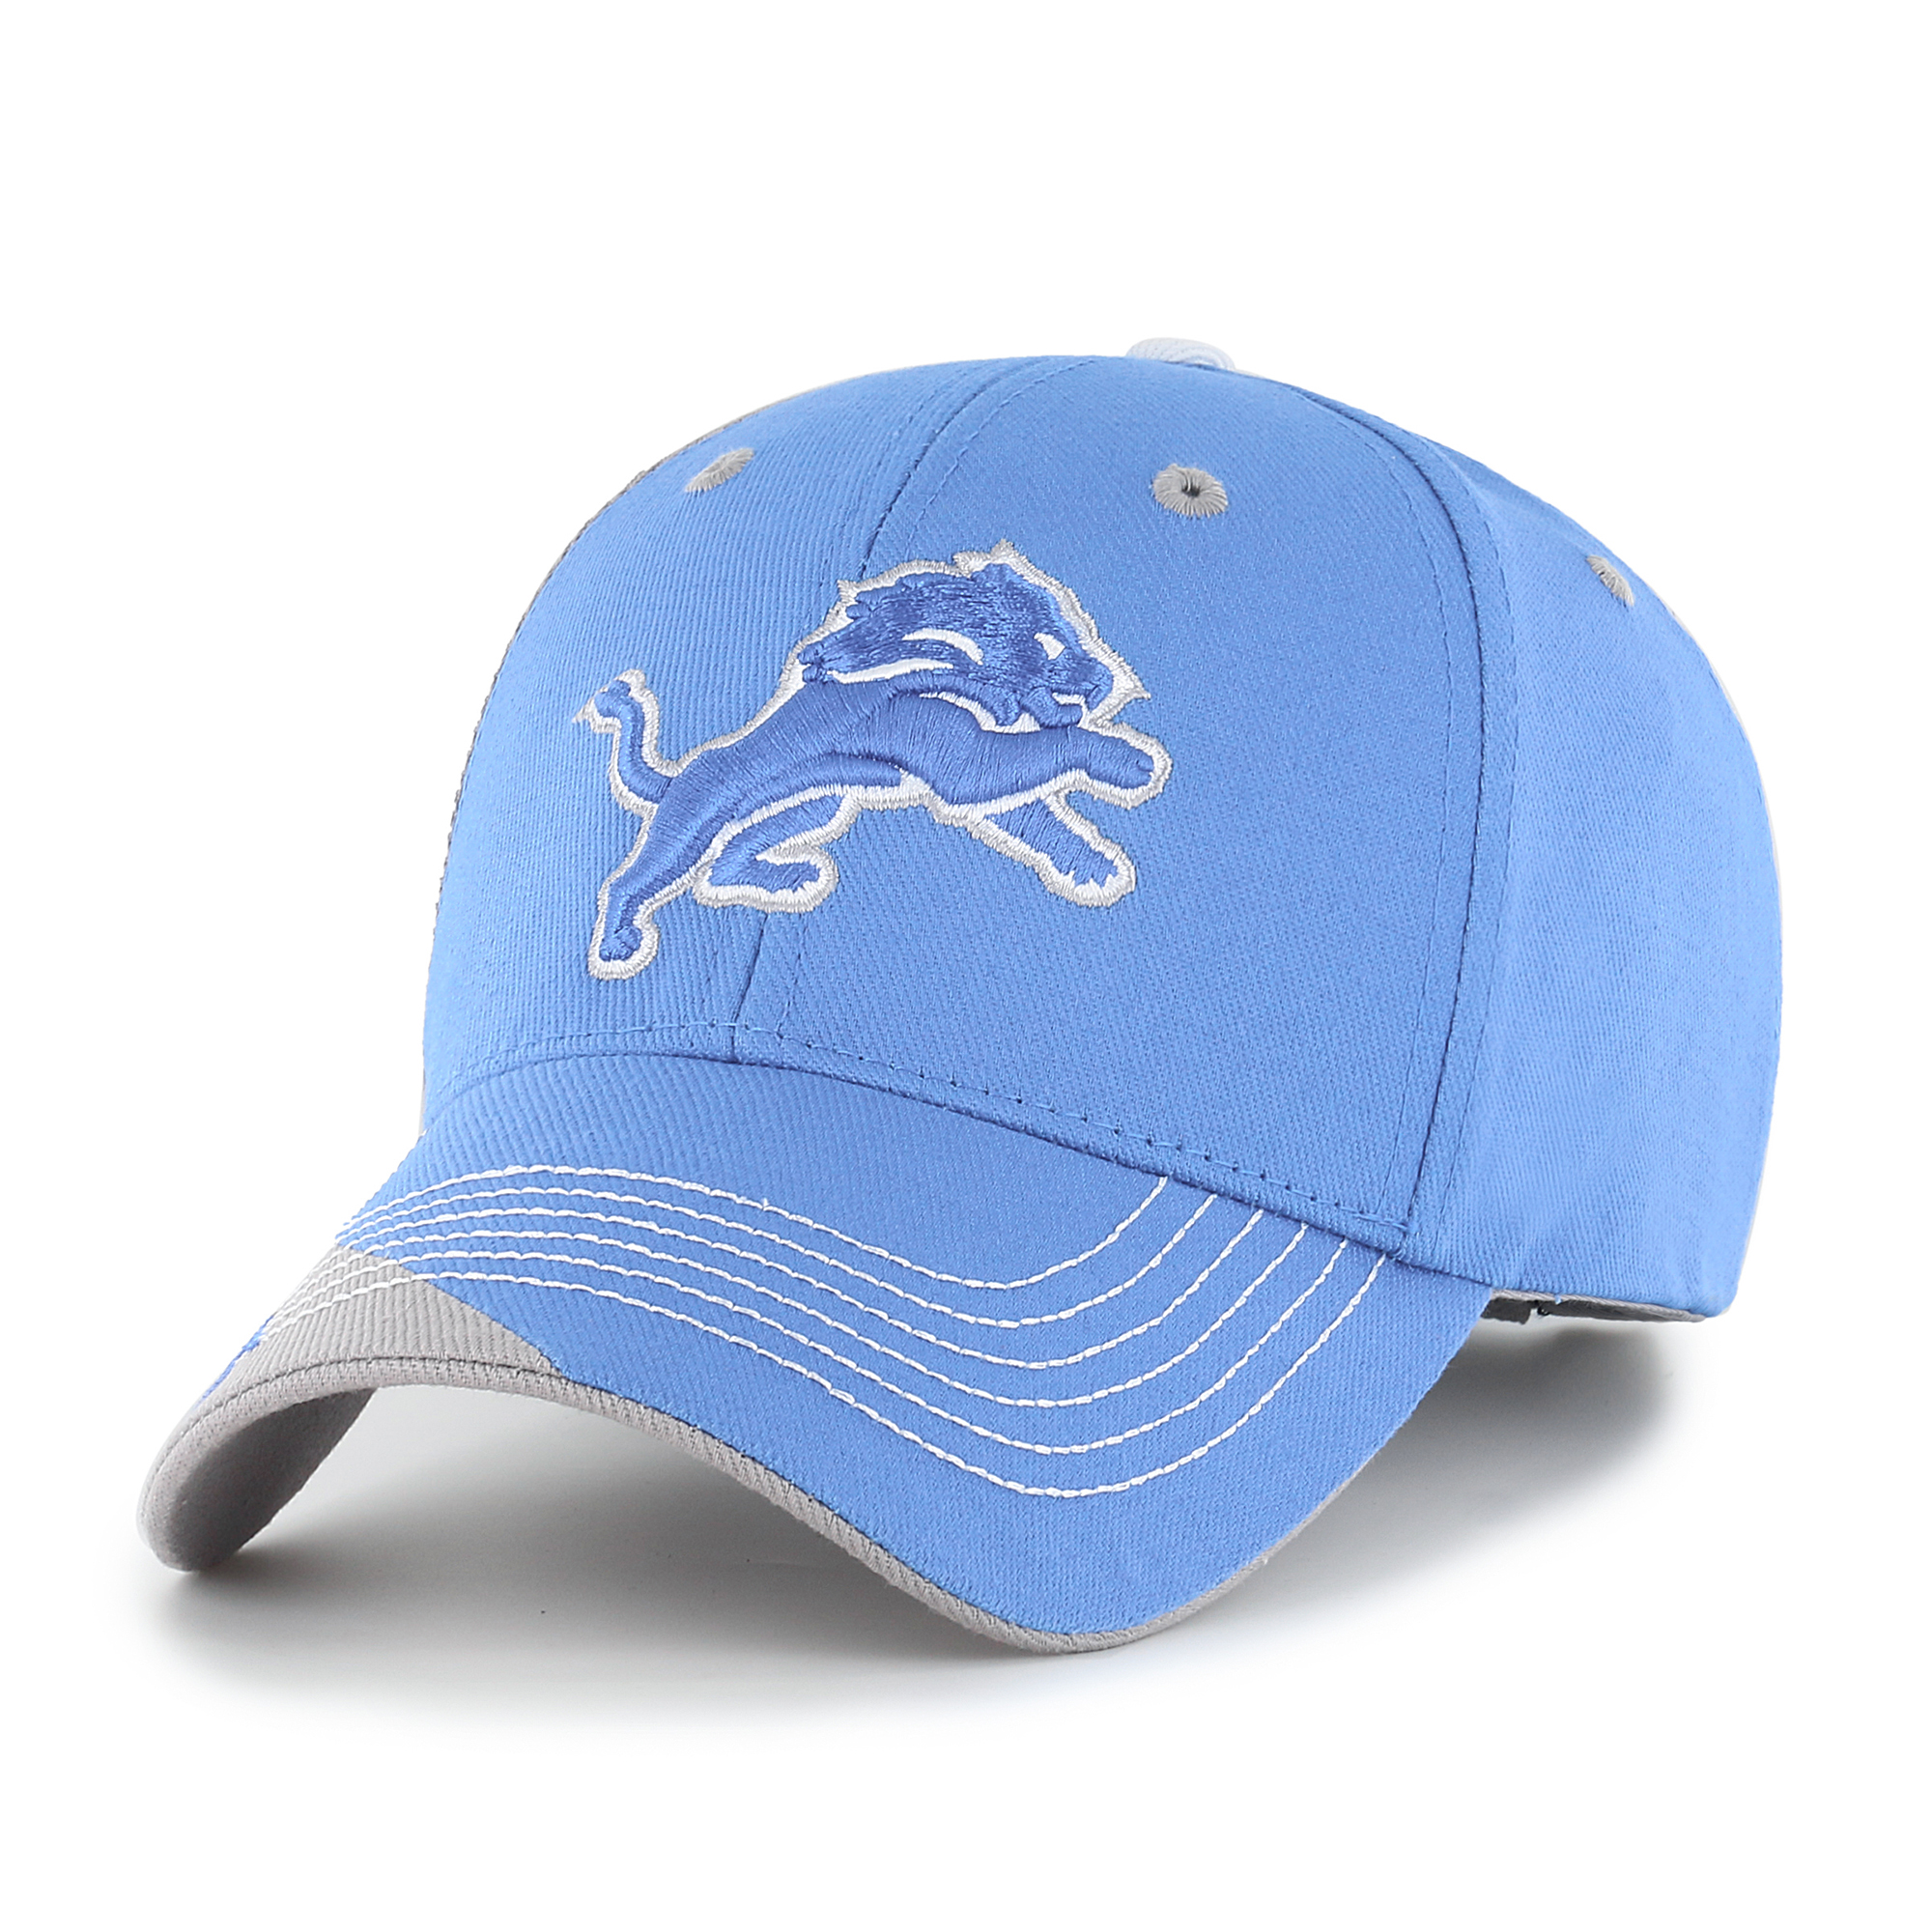 NFL Detroit Lions Hubris Adjustable Cap/Hat by Fan Favorite